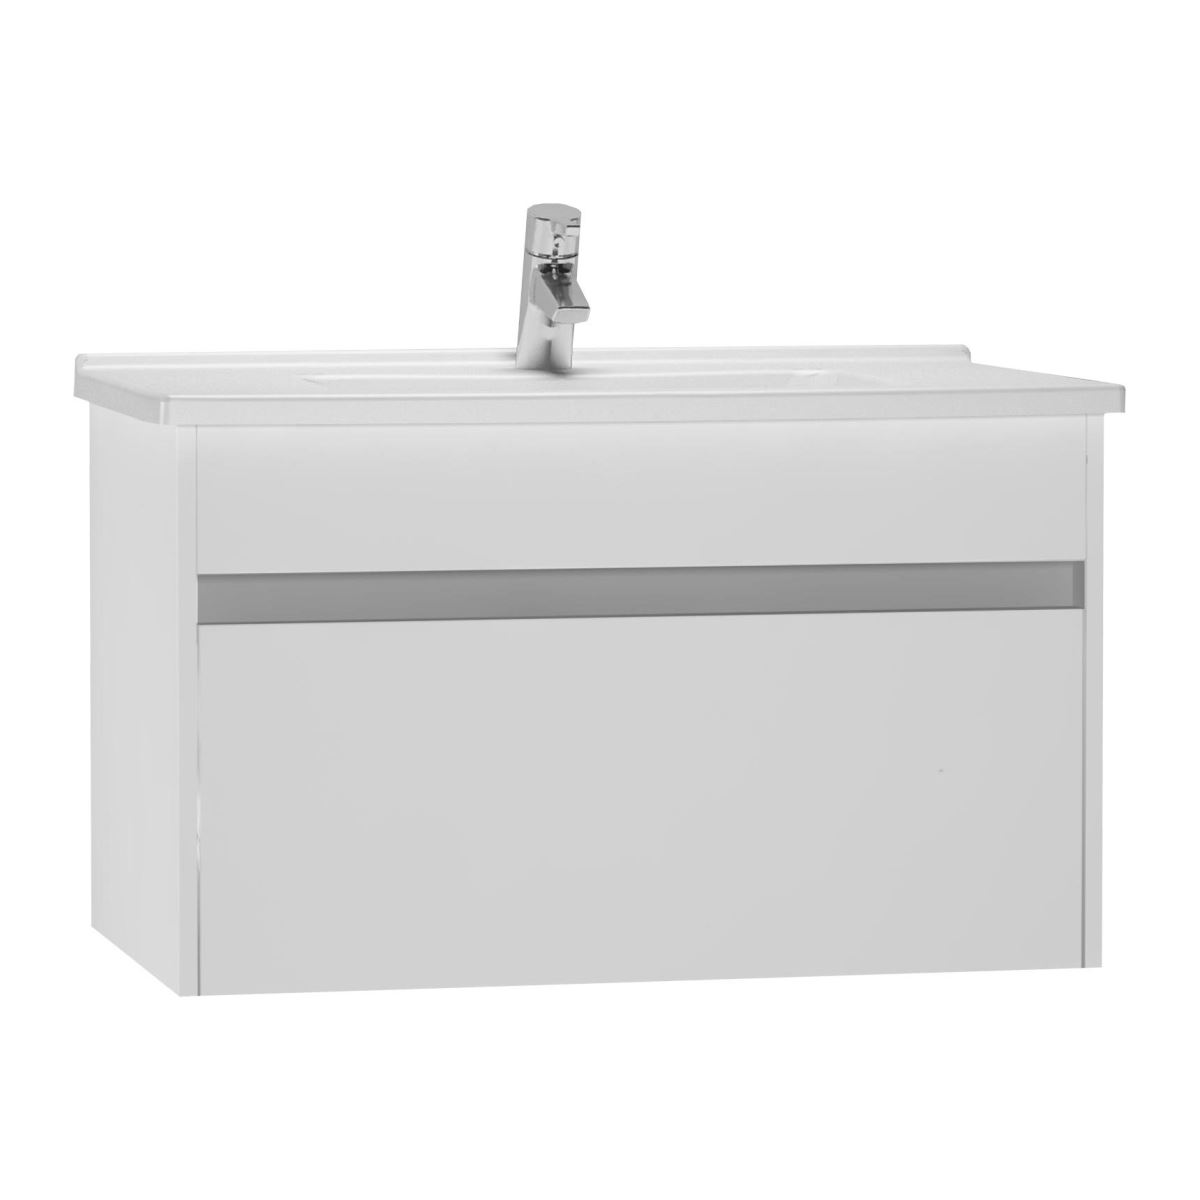 click on 80cm Vanity Unit with Drawer and Basin image to enlarge